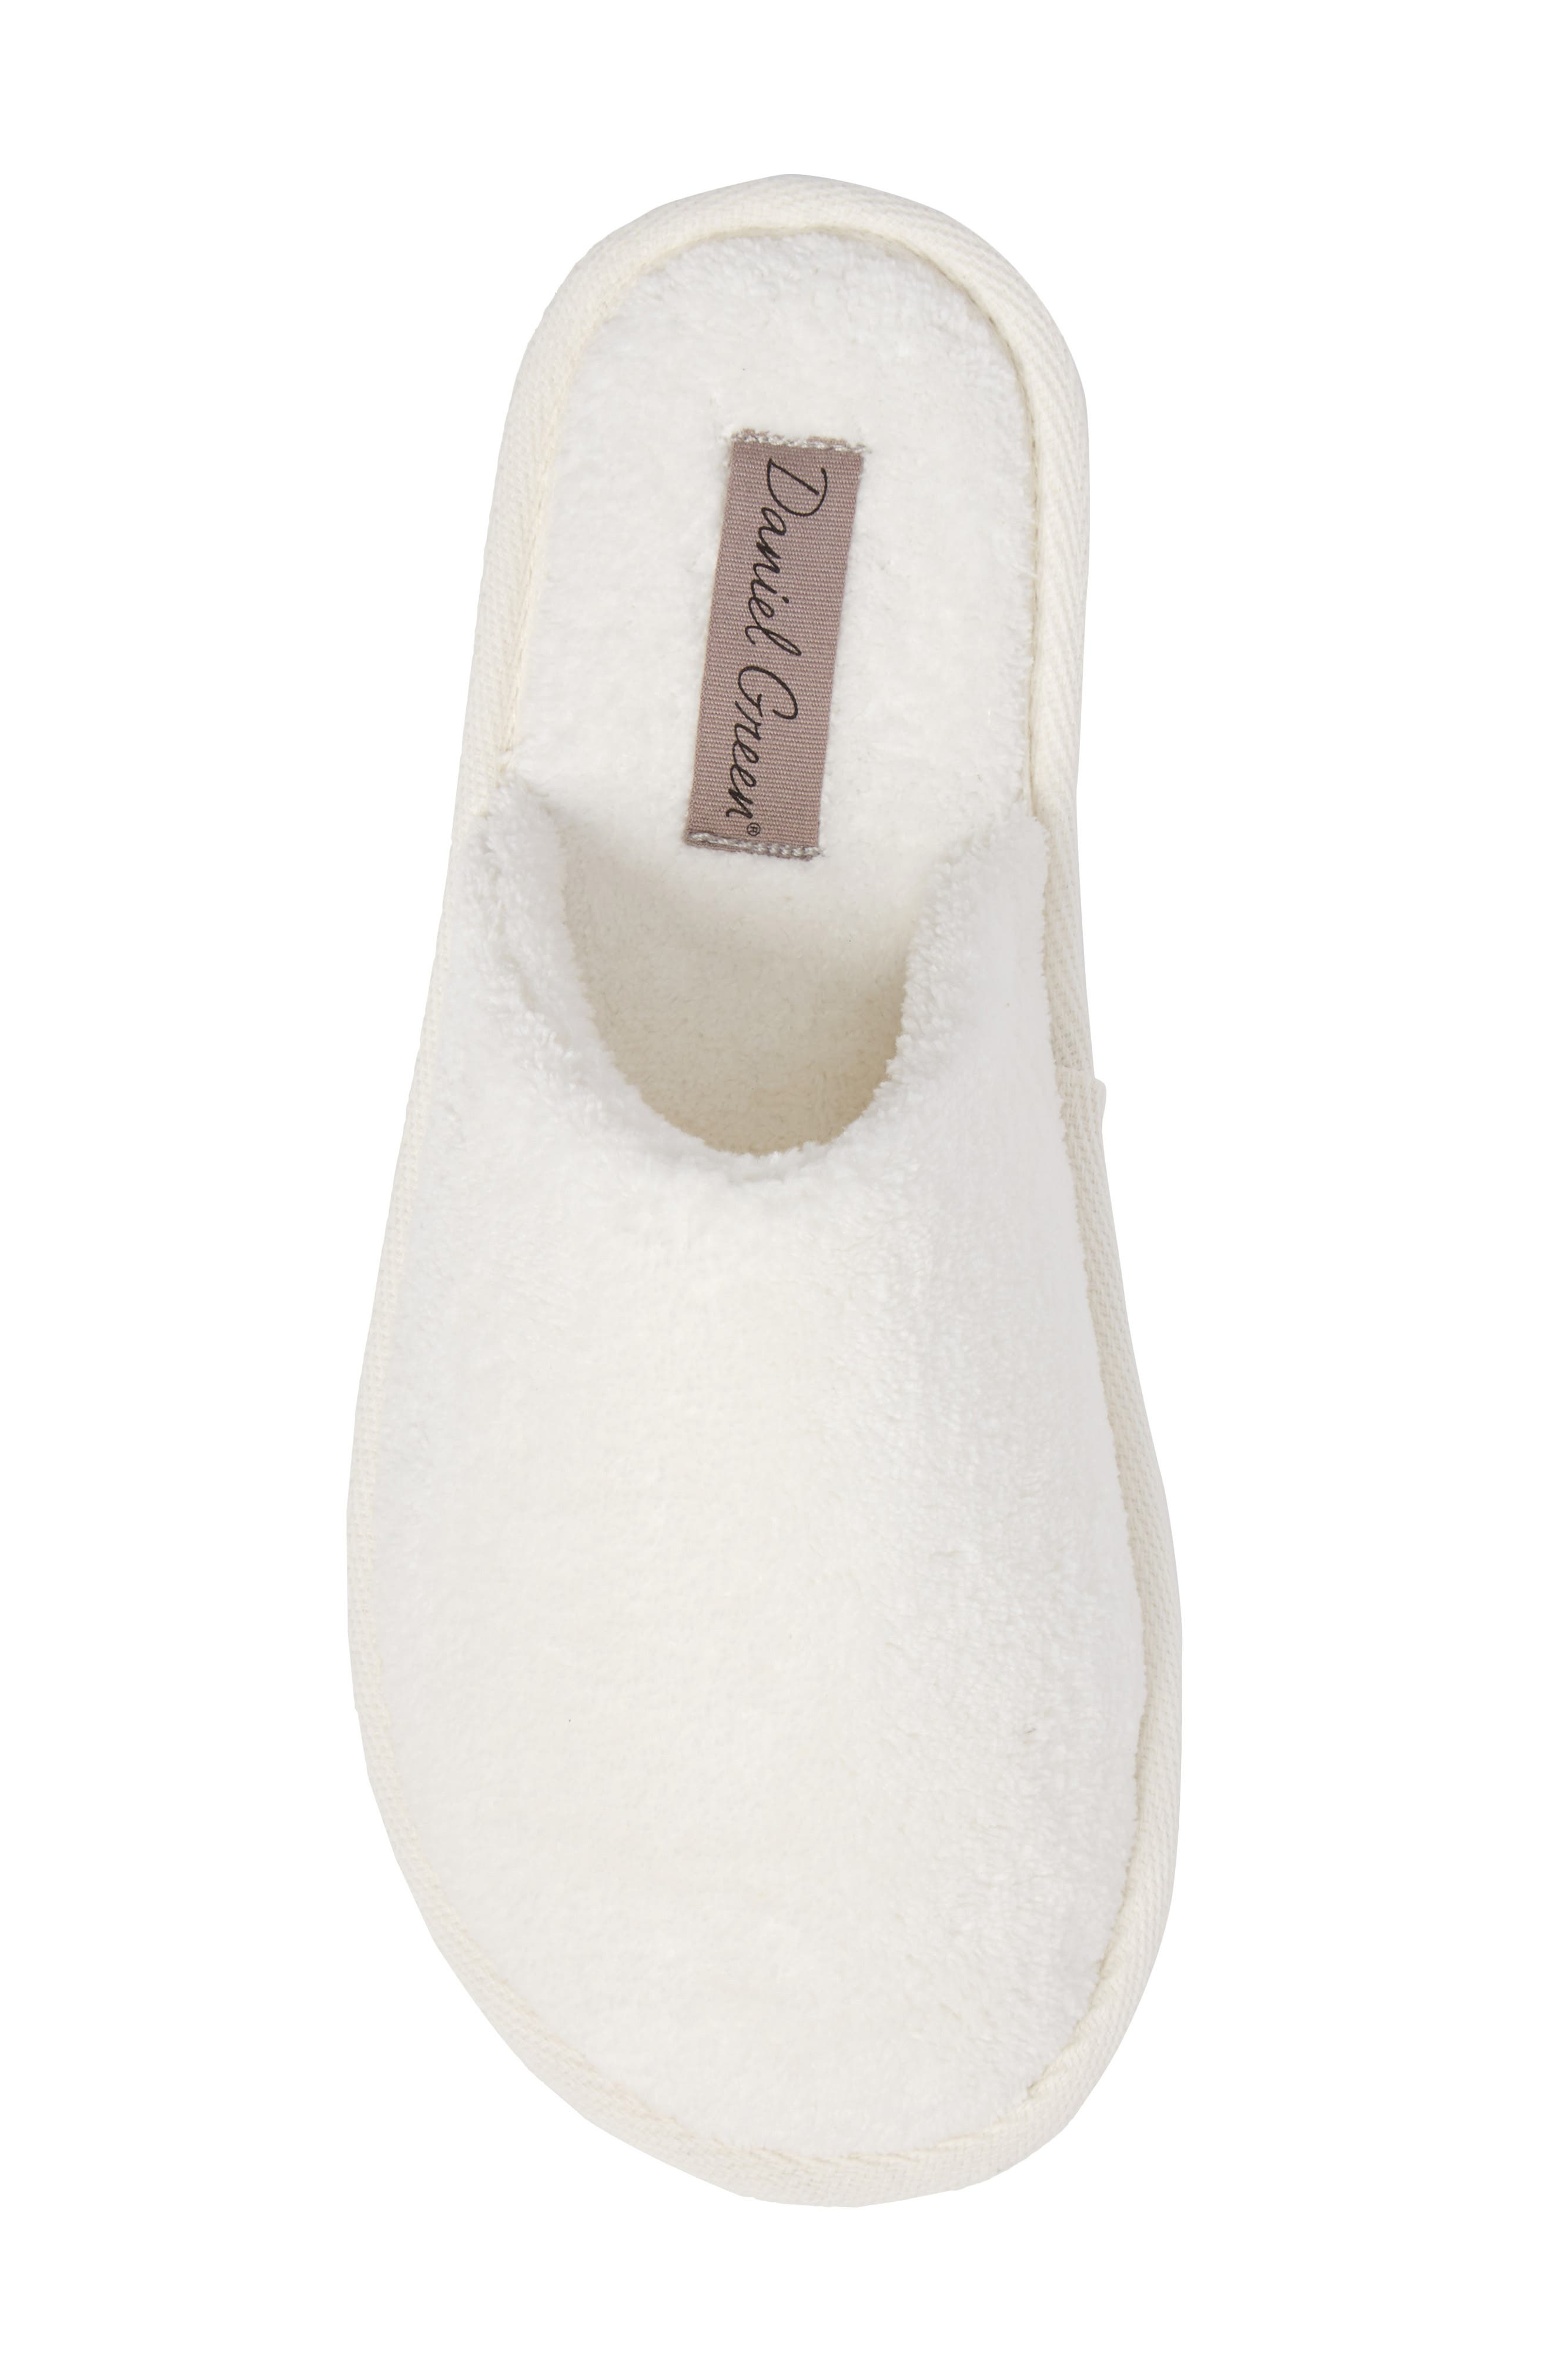 DANIEL GREEN, Rave II Slipper, Alternate thumbnail 5, color, WHITE FABRIC